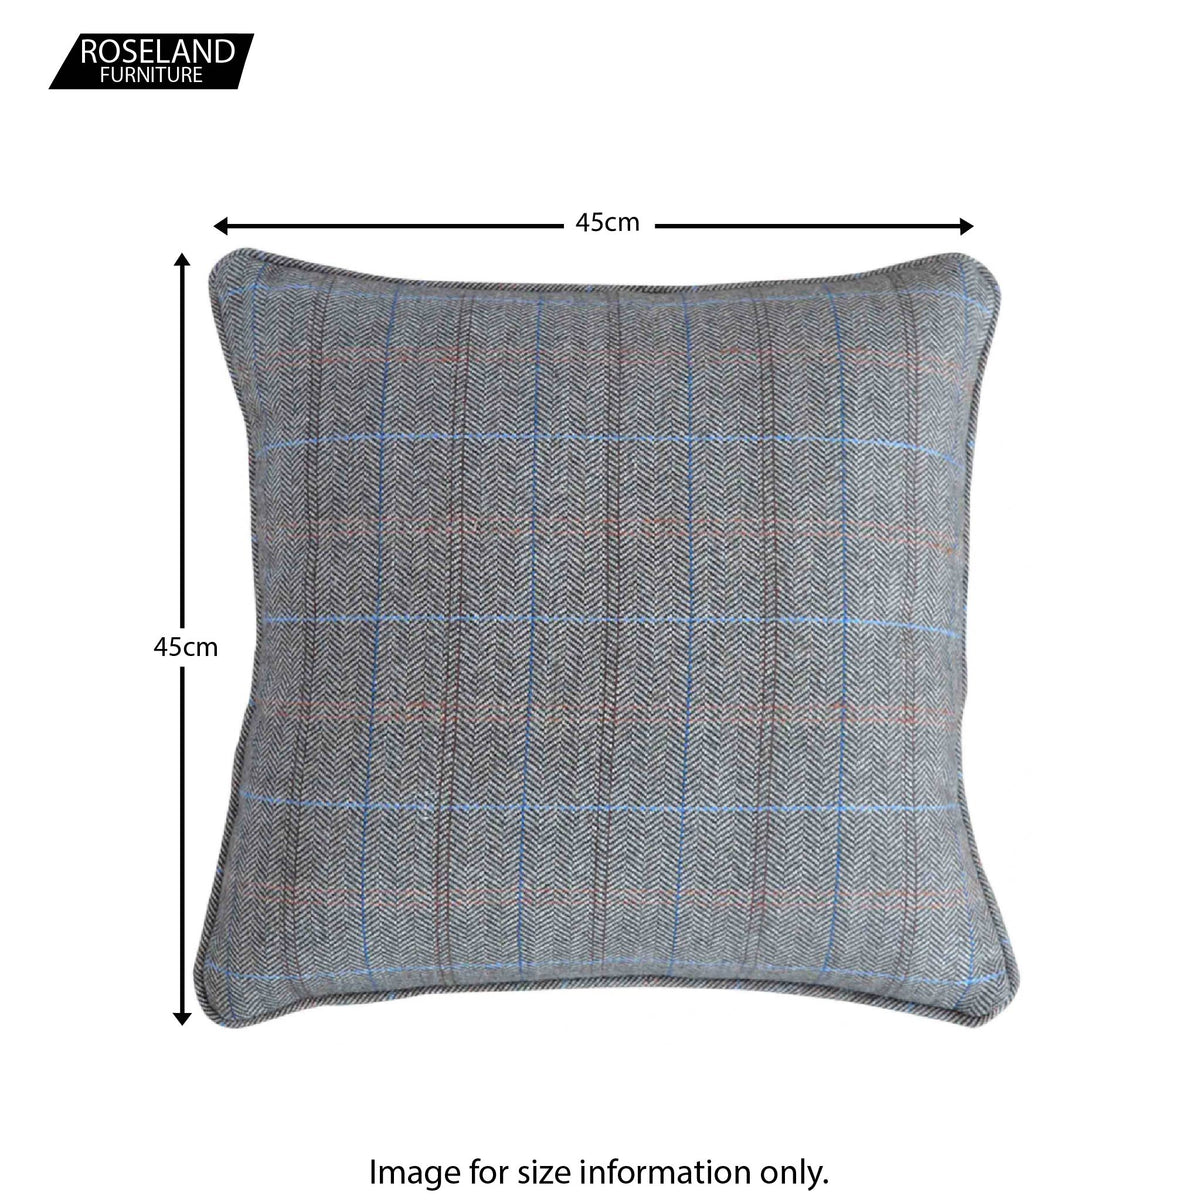 Artisan Grey Multi Tweed Cushion - Size Guide